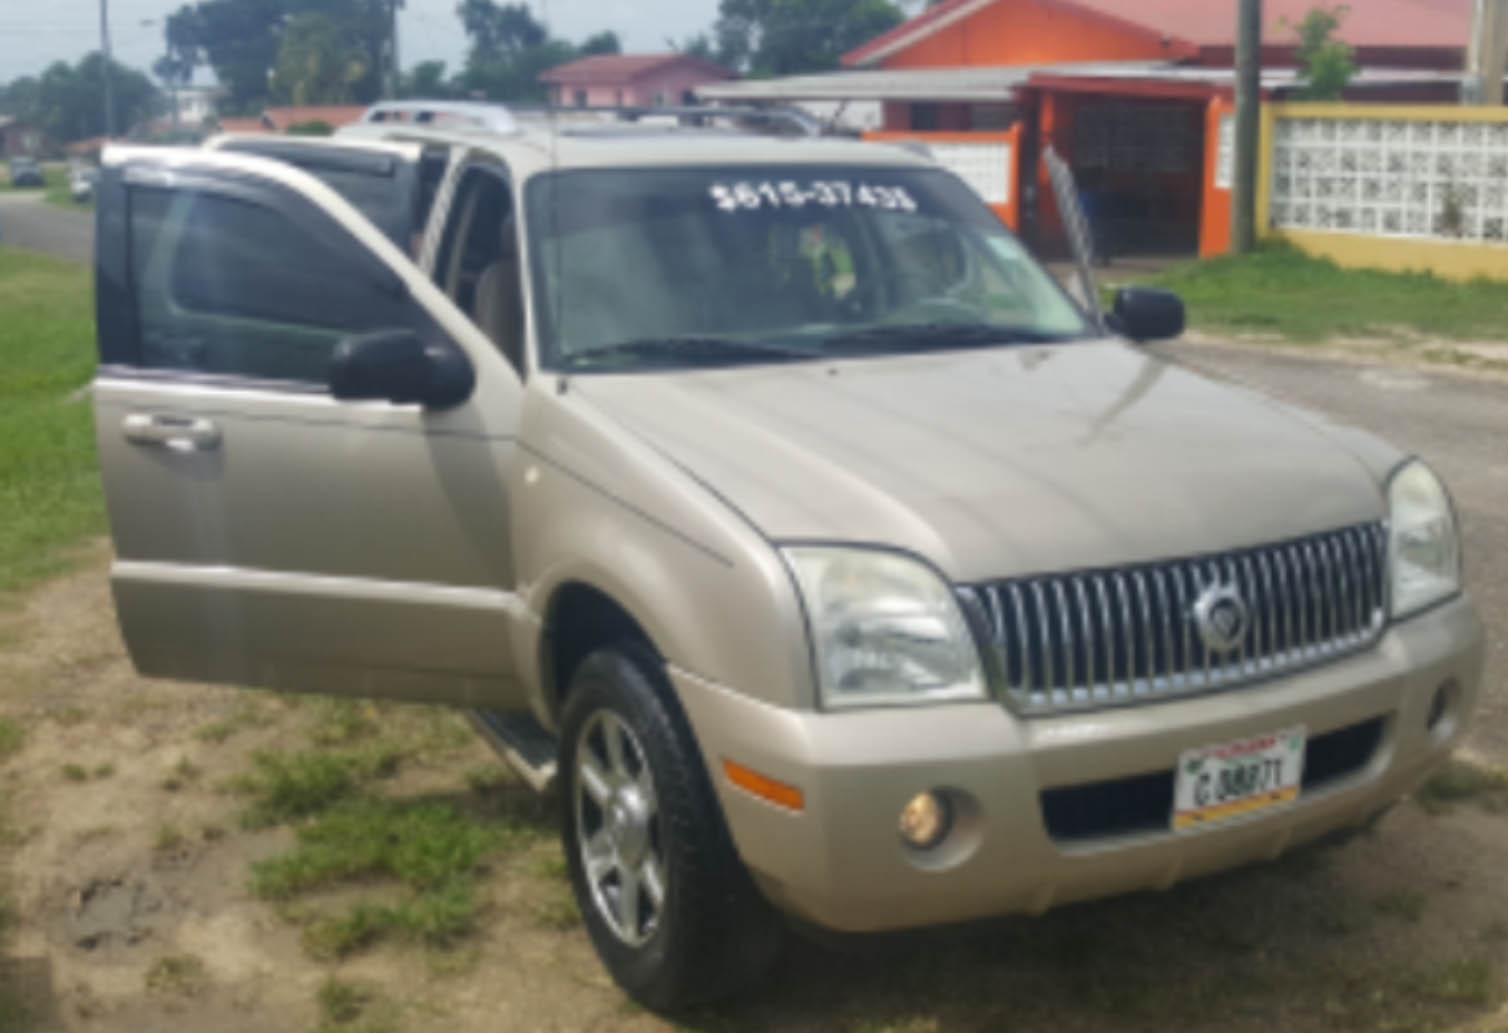 SUV for SALE in Belmopan